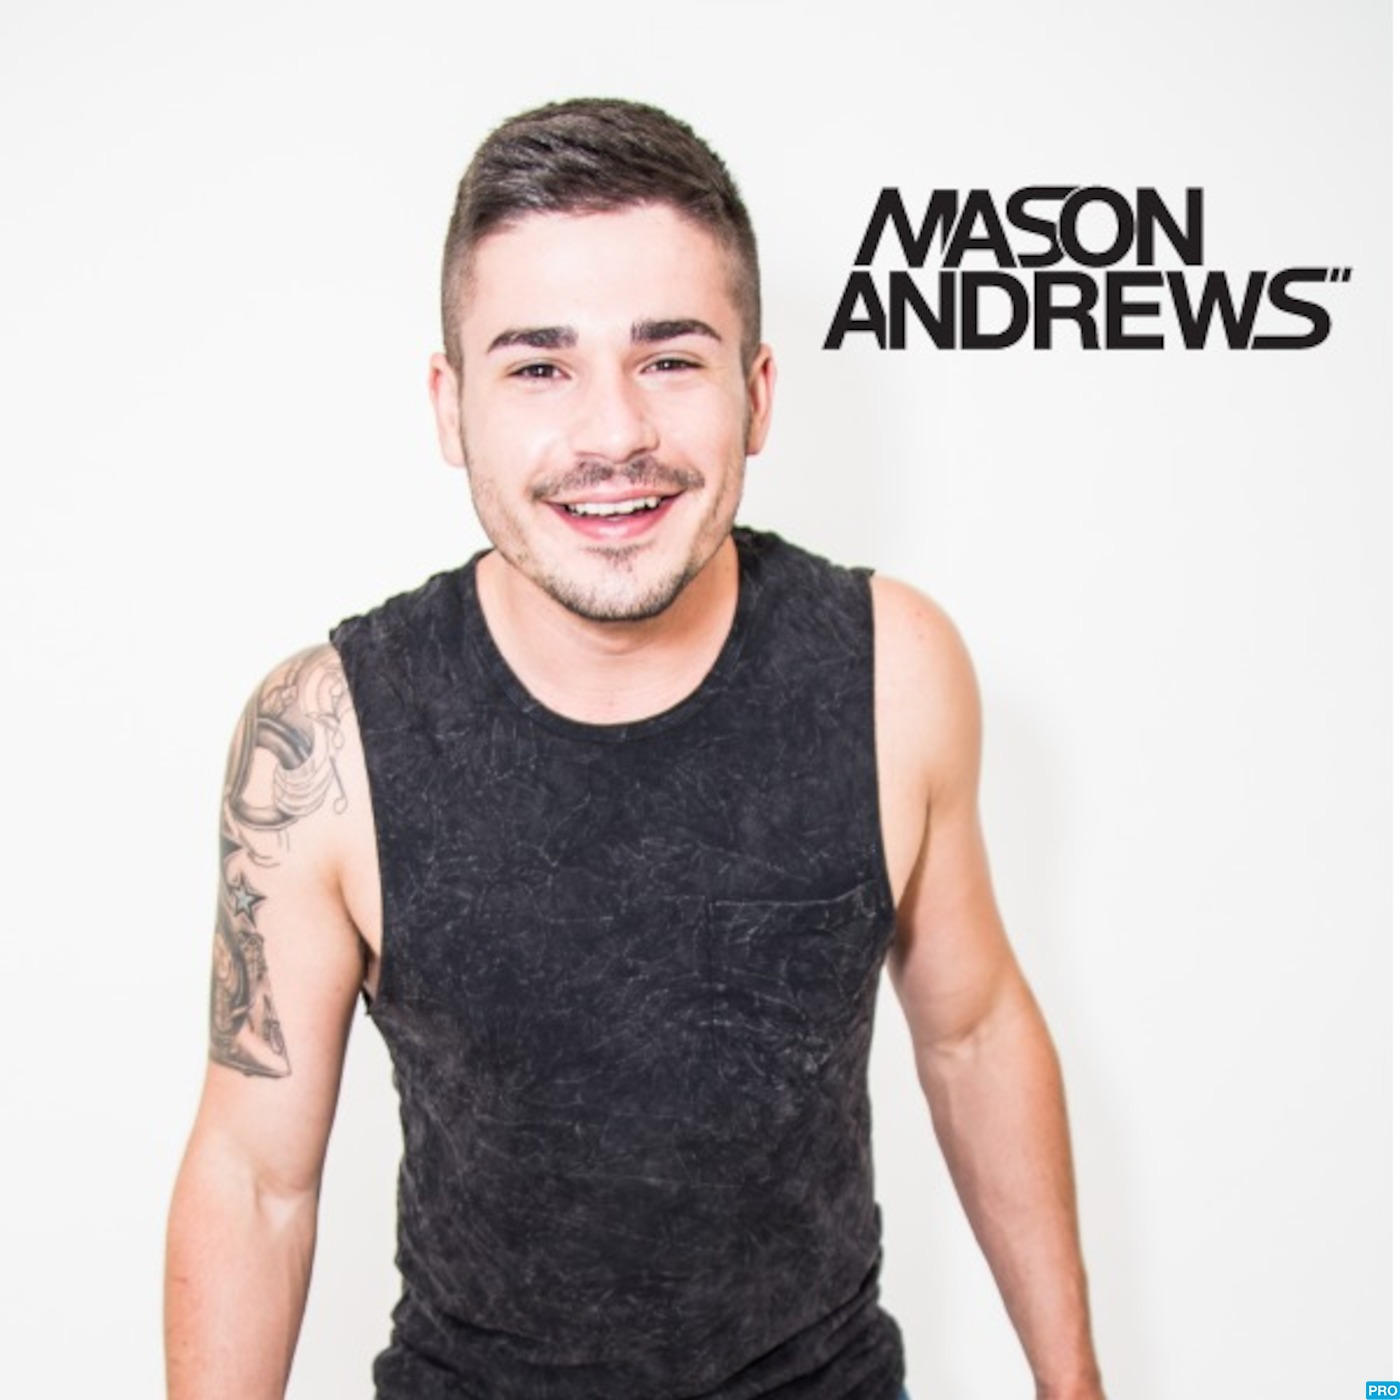 DJ Mason Andrews' Podcast